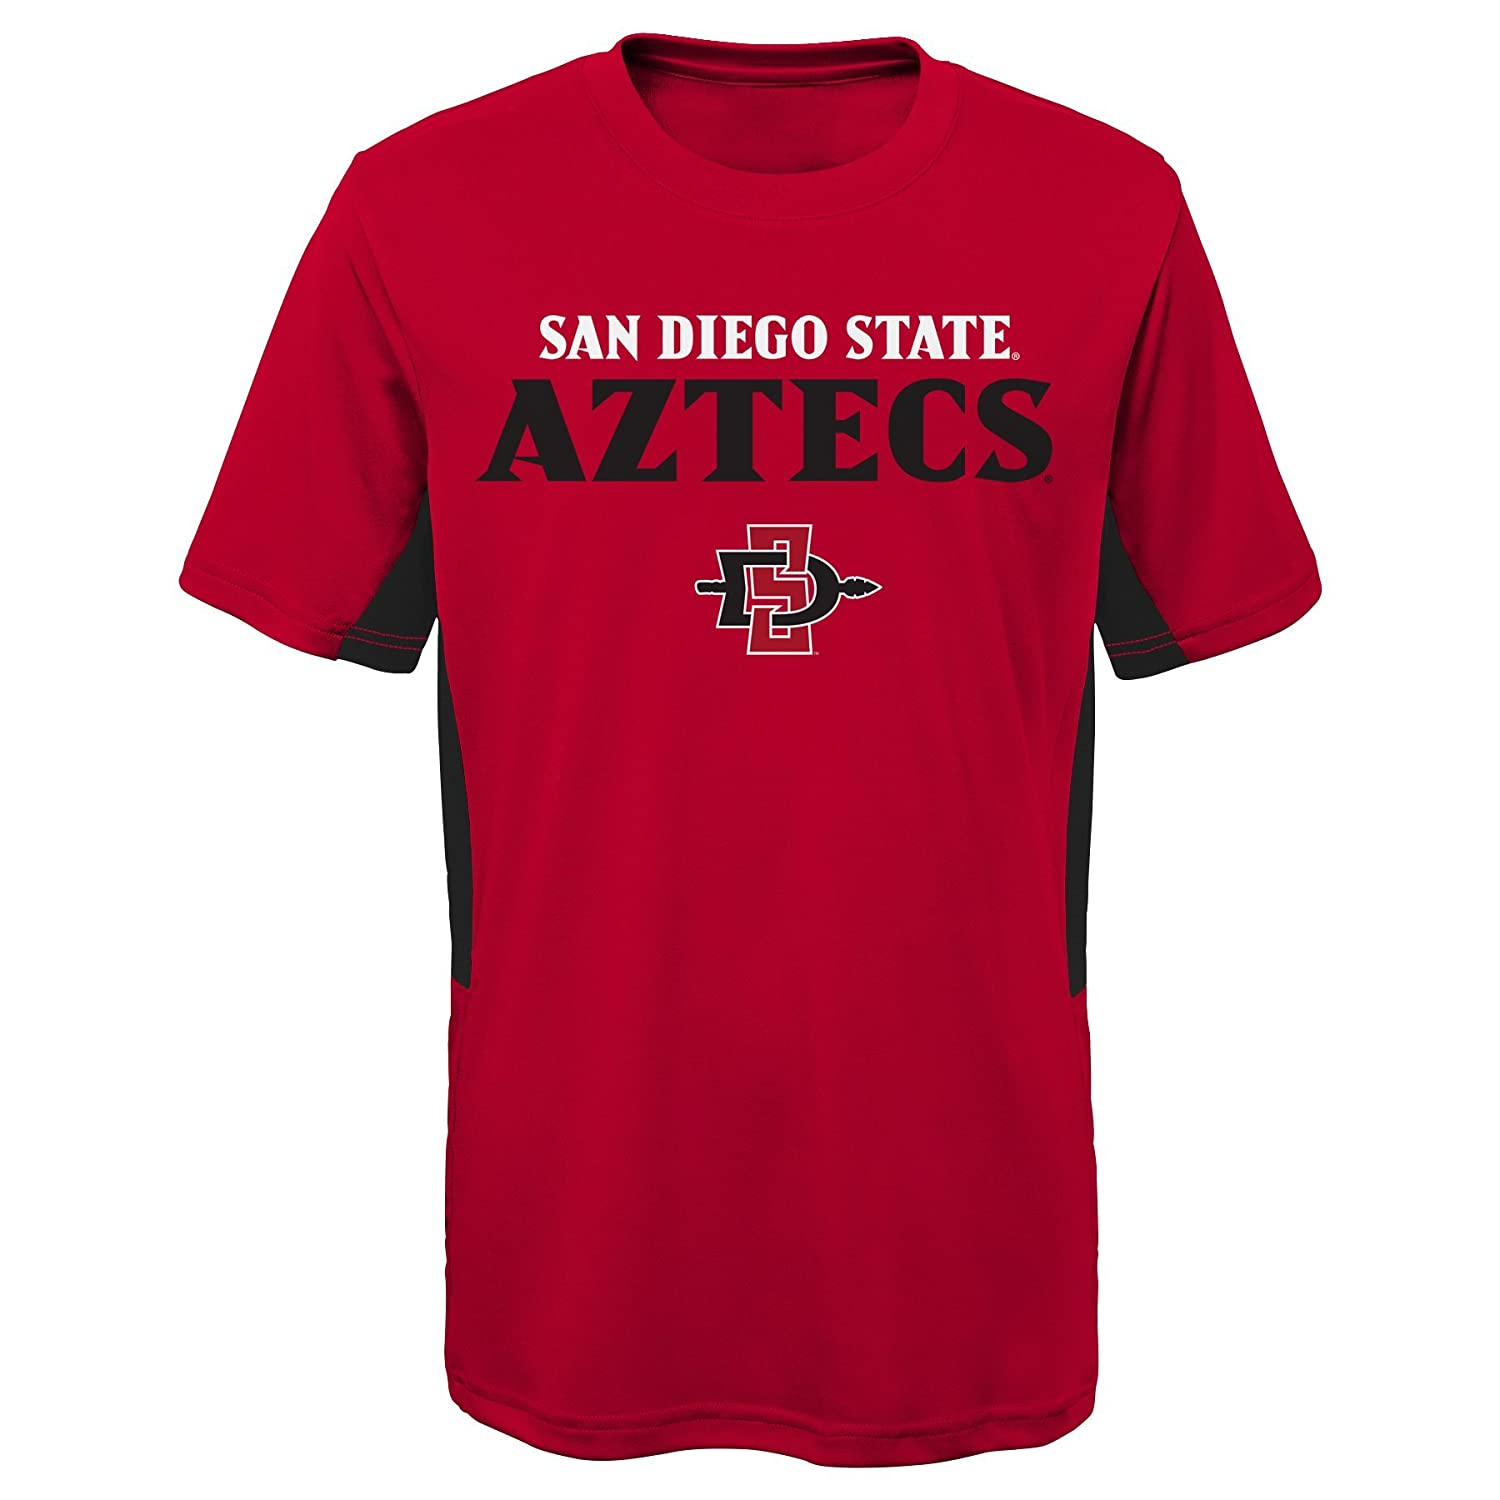 Youth Small 8 NCAA by Outerstuff NCAA San Diego State Aztecs Youth Boys Mainframe: Short Sleeve Performance Top Dark Red